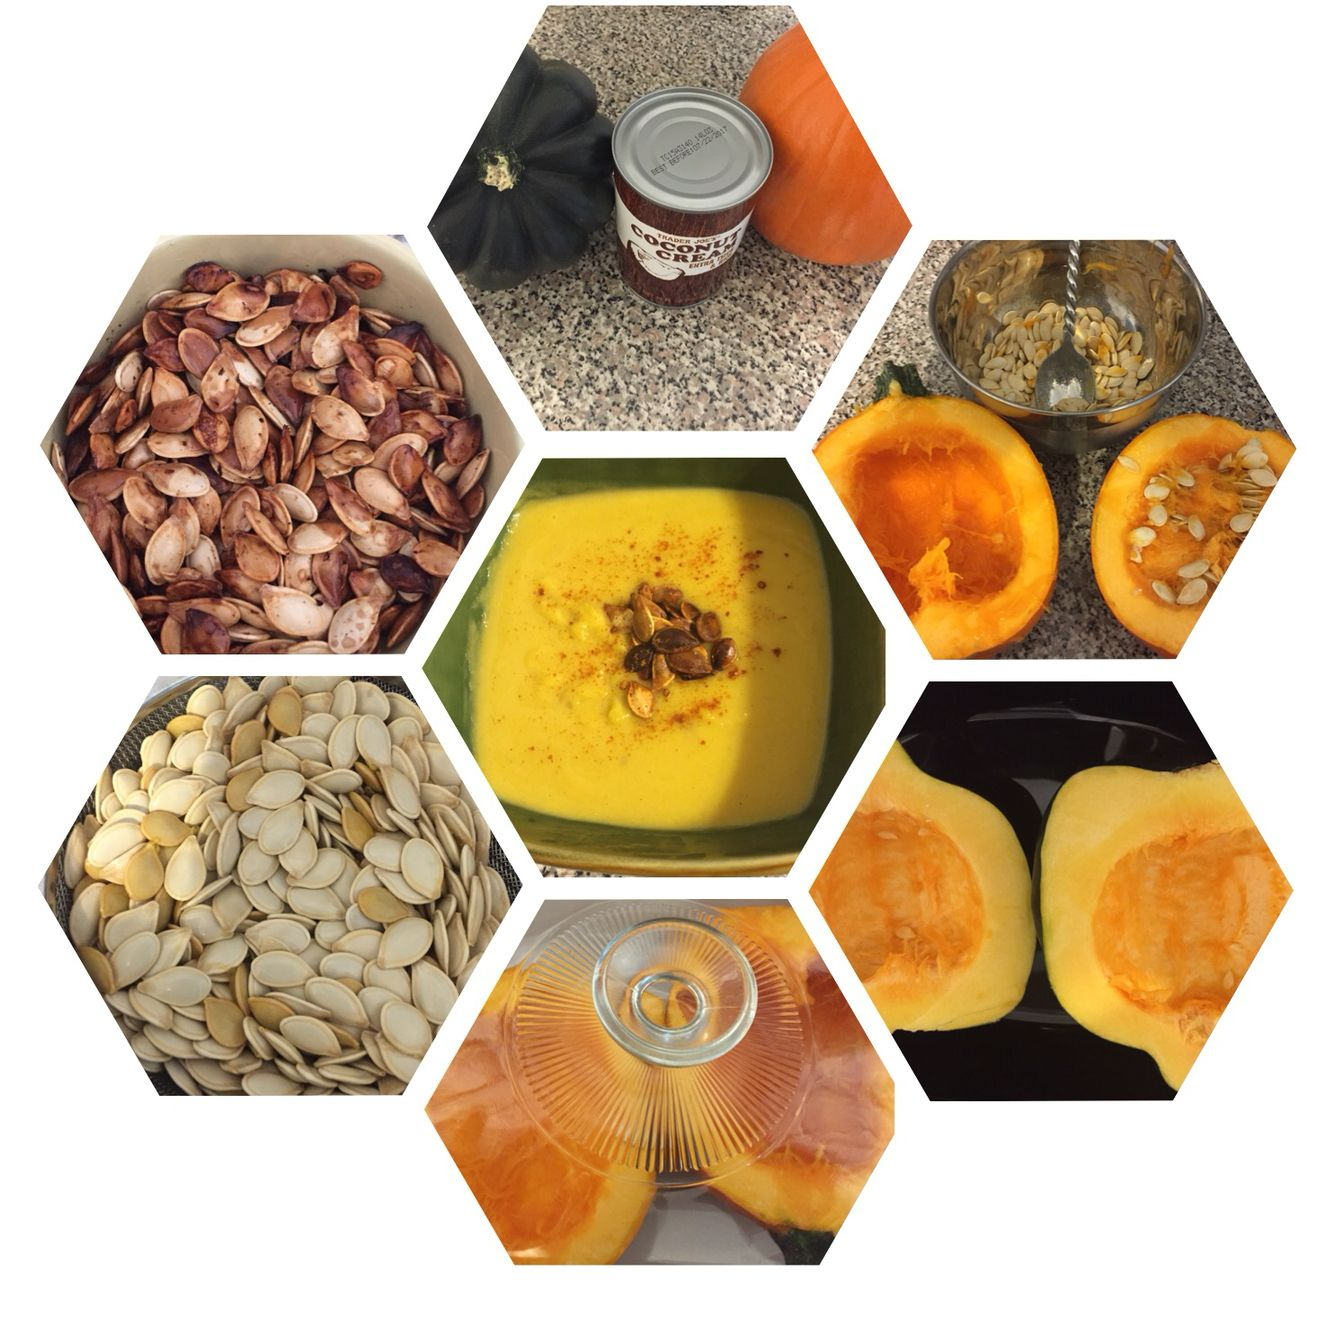 Autumn Soup Acorn Squash; Pumpkin; Heavy Coconut Milk; Course Sea Salt and All Spice. Roast seeds with pink himalaya salt and cold pressed olive oil. Garnish with Cayenne pepper. Delicious! #sizesixsoon #healthywealthywise #cleaneating #Imaluxurylady